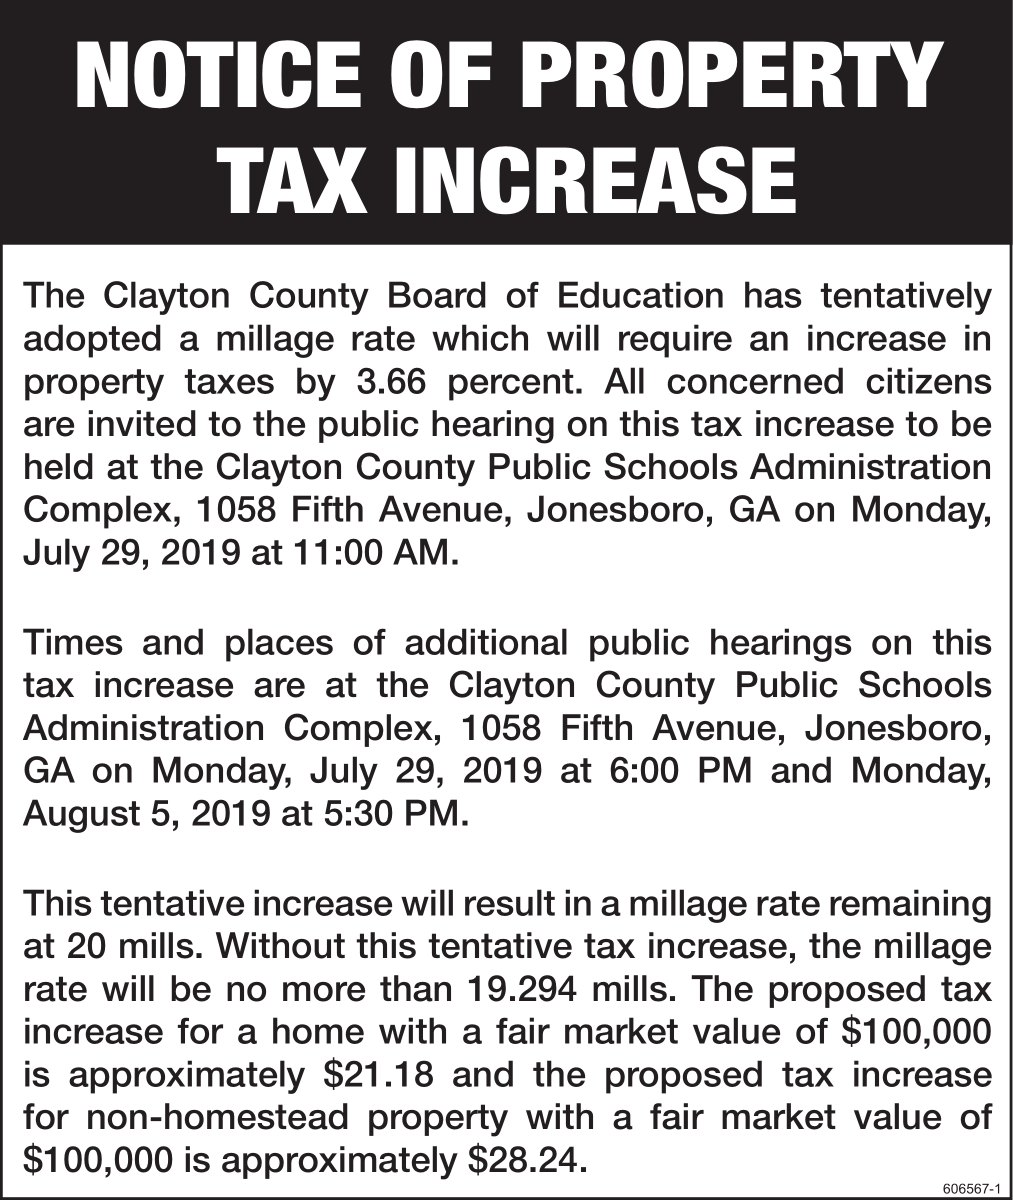 Notice of Property Tax Increase